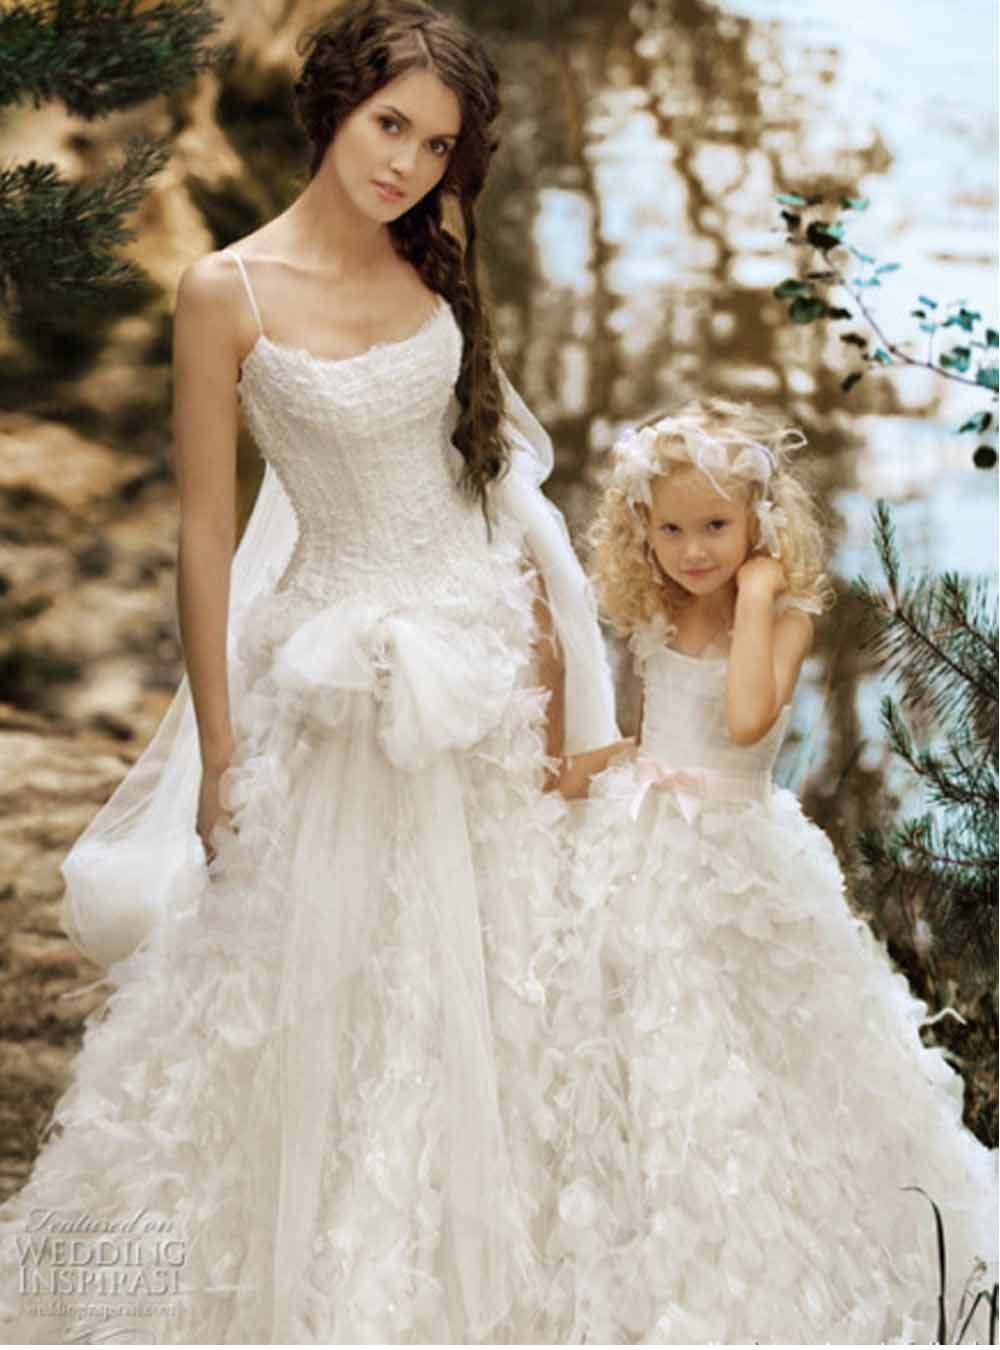 Simple wedding dress hairstyles and fashion for A pretty wedding dress